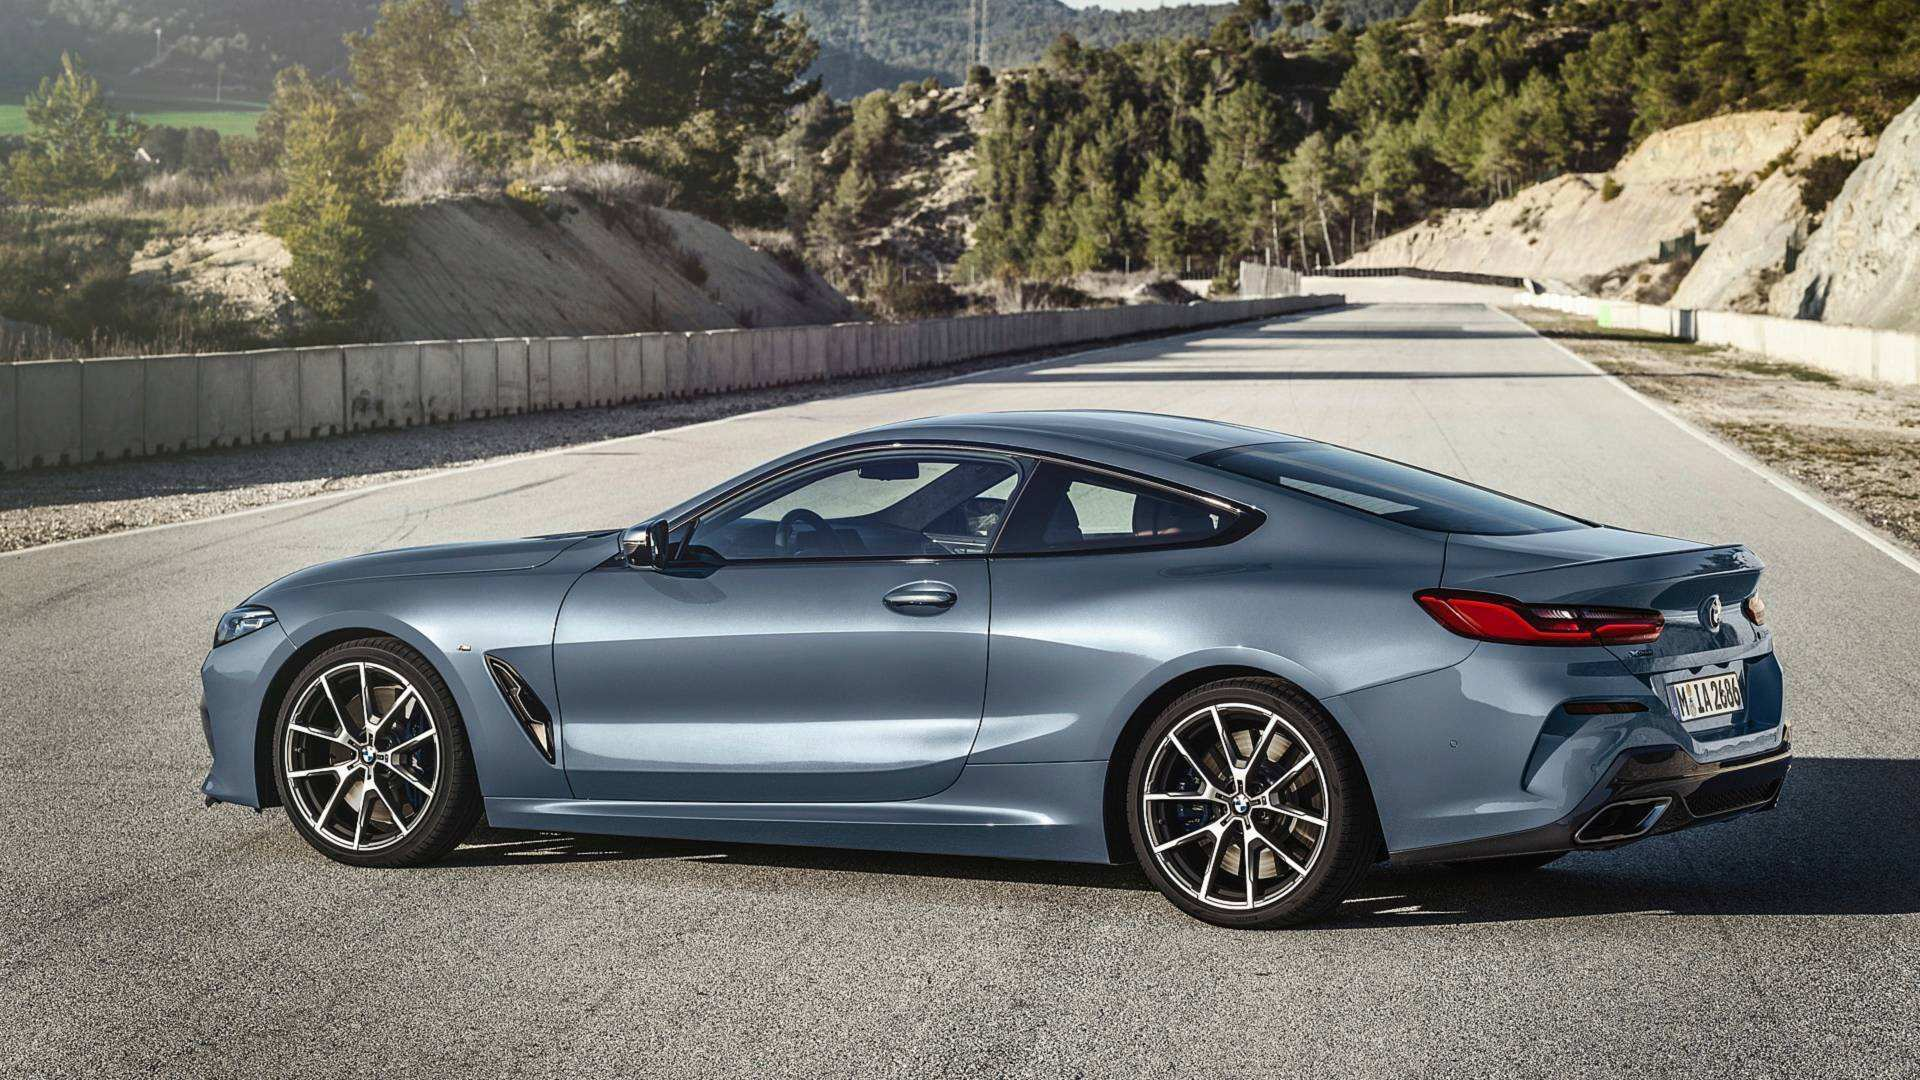 45 Gallery of 2020 Bmw 850I New Review for 2020 Bmw 850I